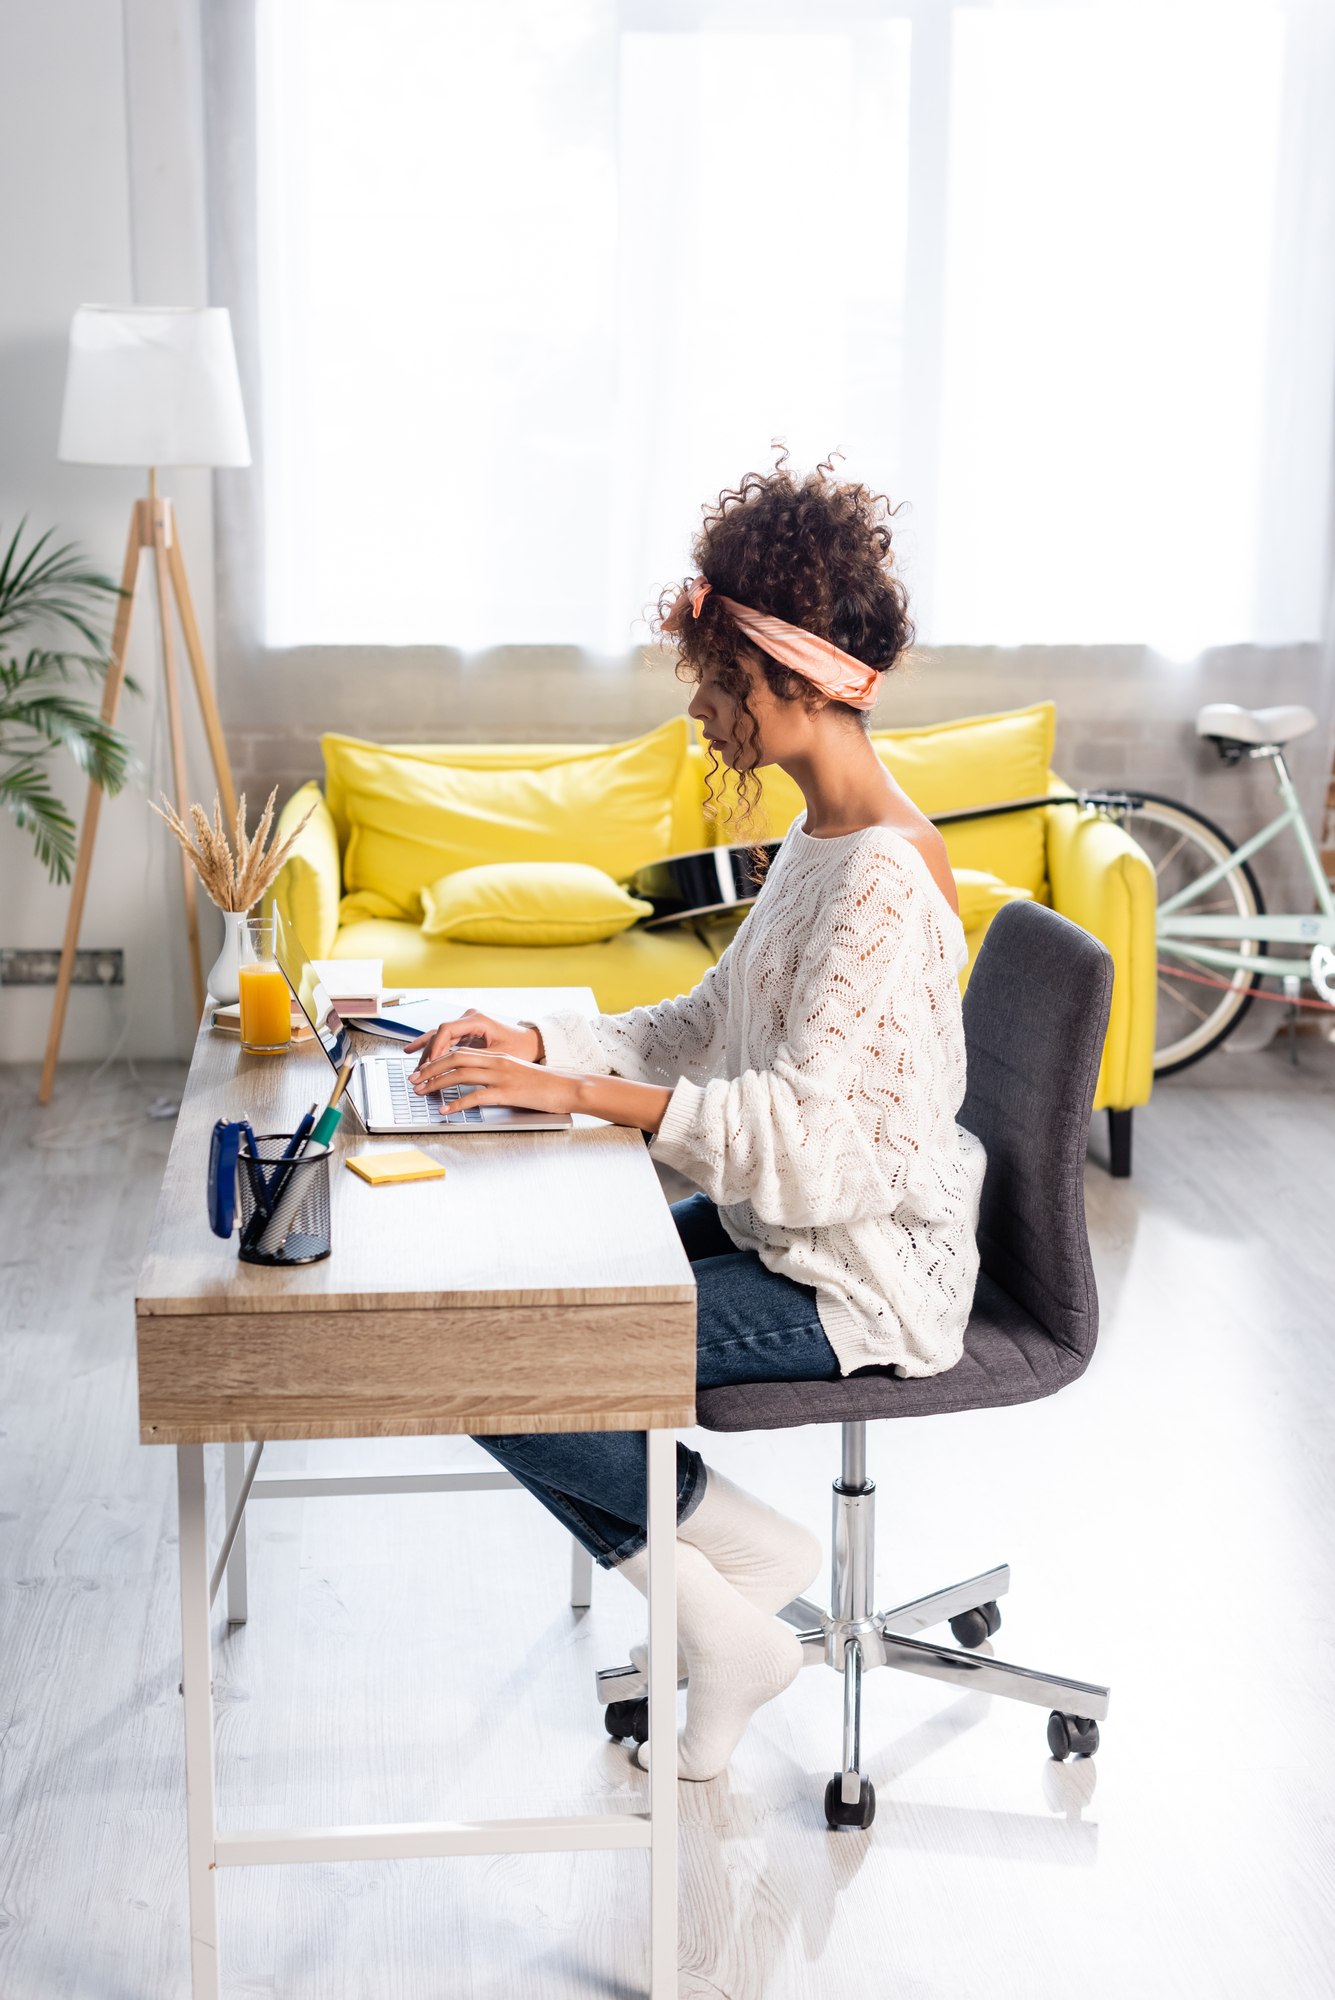 Upsizing Your Home for Your Expanding Business